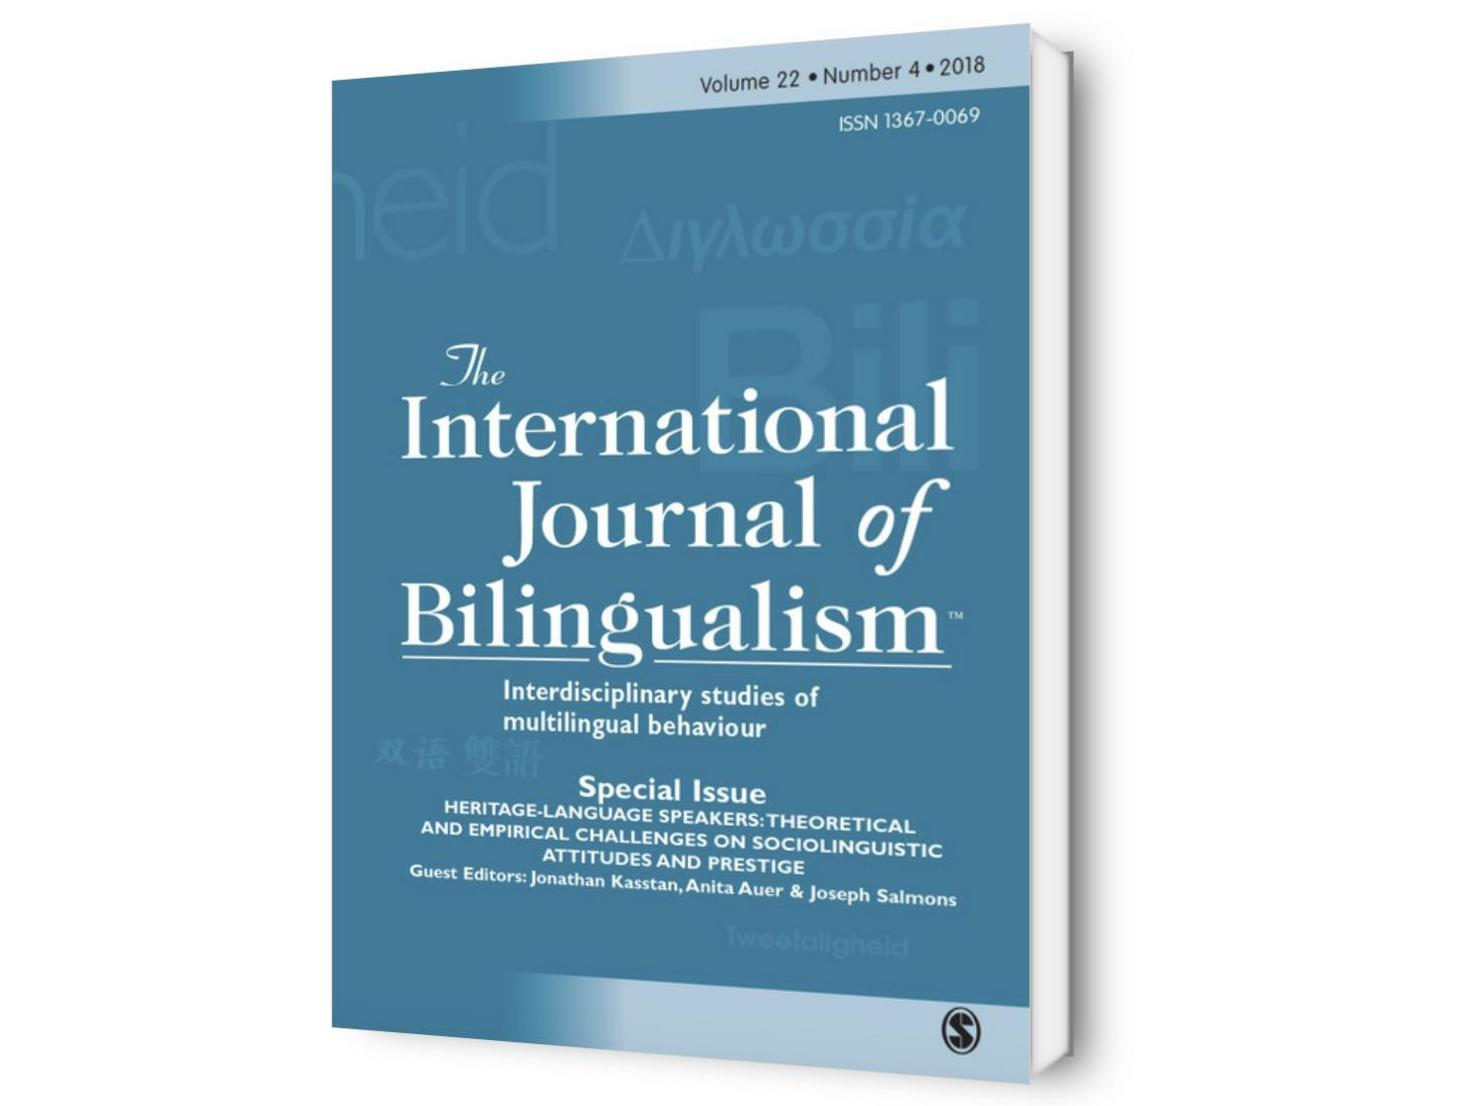 Heritage-language speakers : Theoretical and empirical challenges on sociolinguistic attitudes and prestige